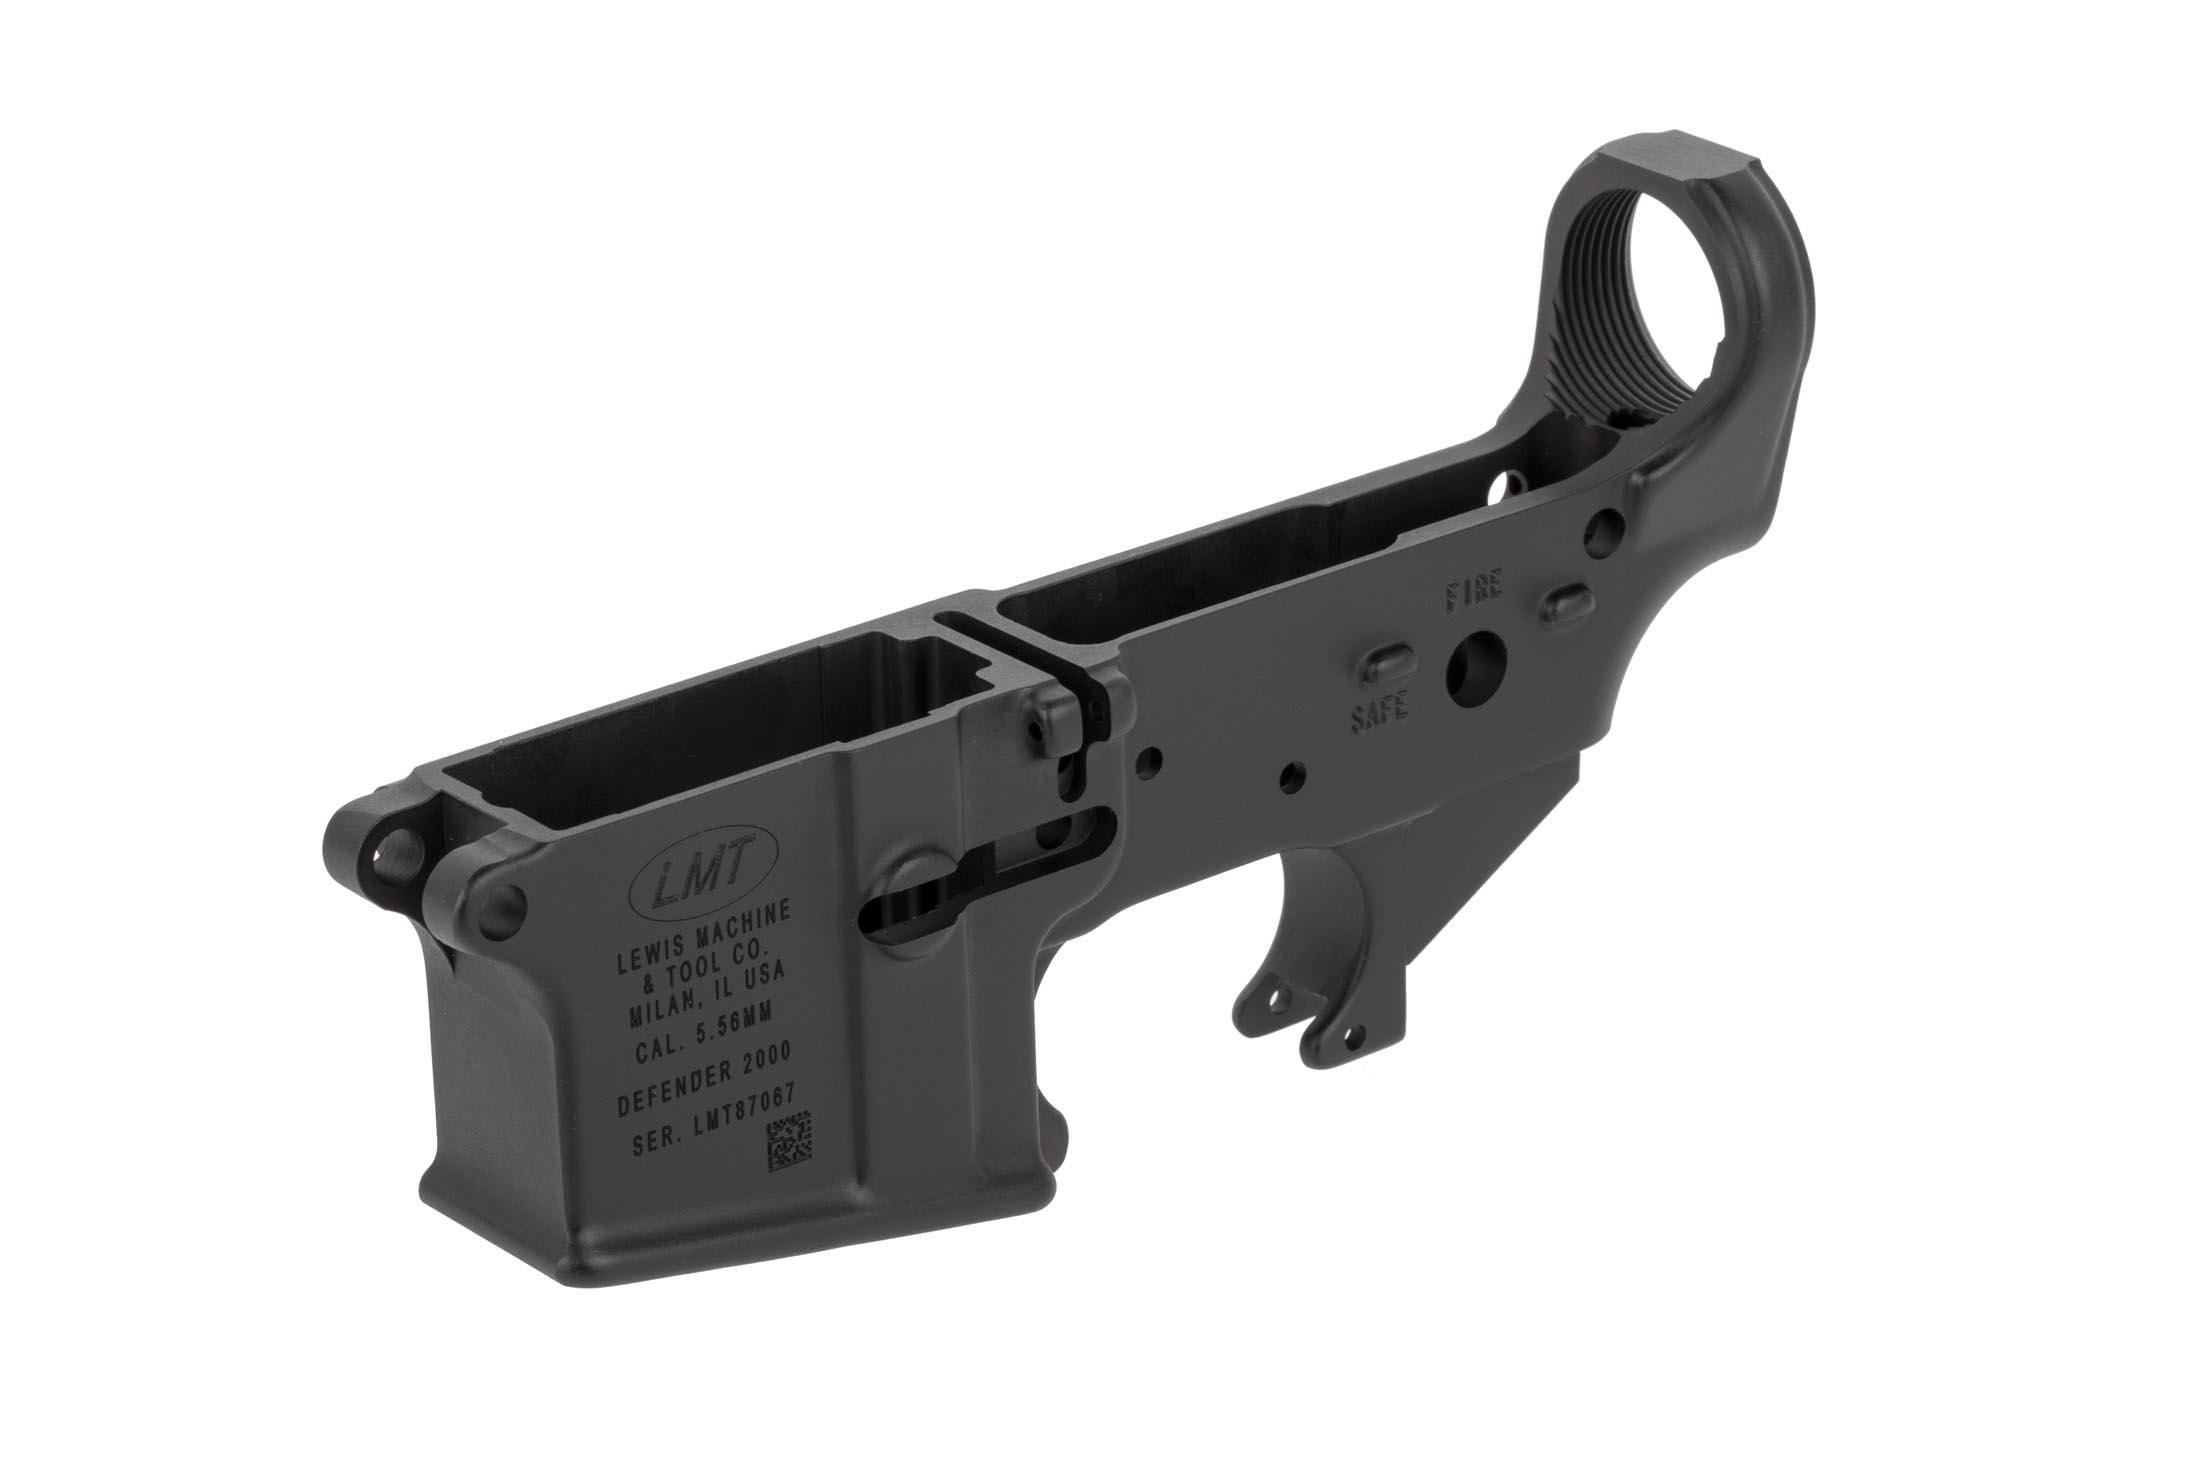 The LMT Defender 2000 ar-15 lower is compatible with Mil-Spec lower parts